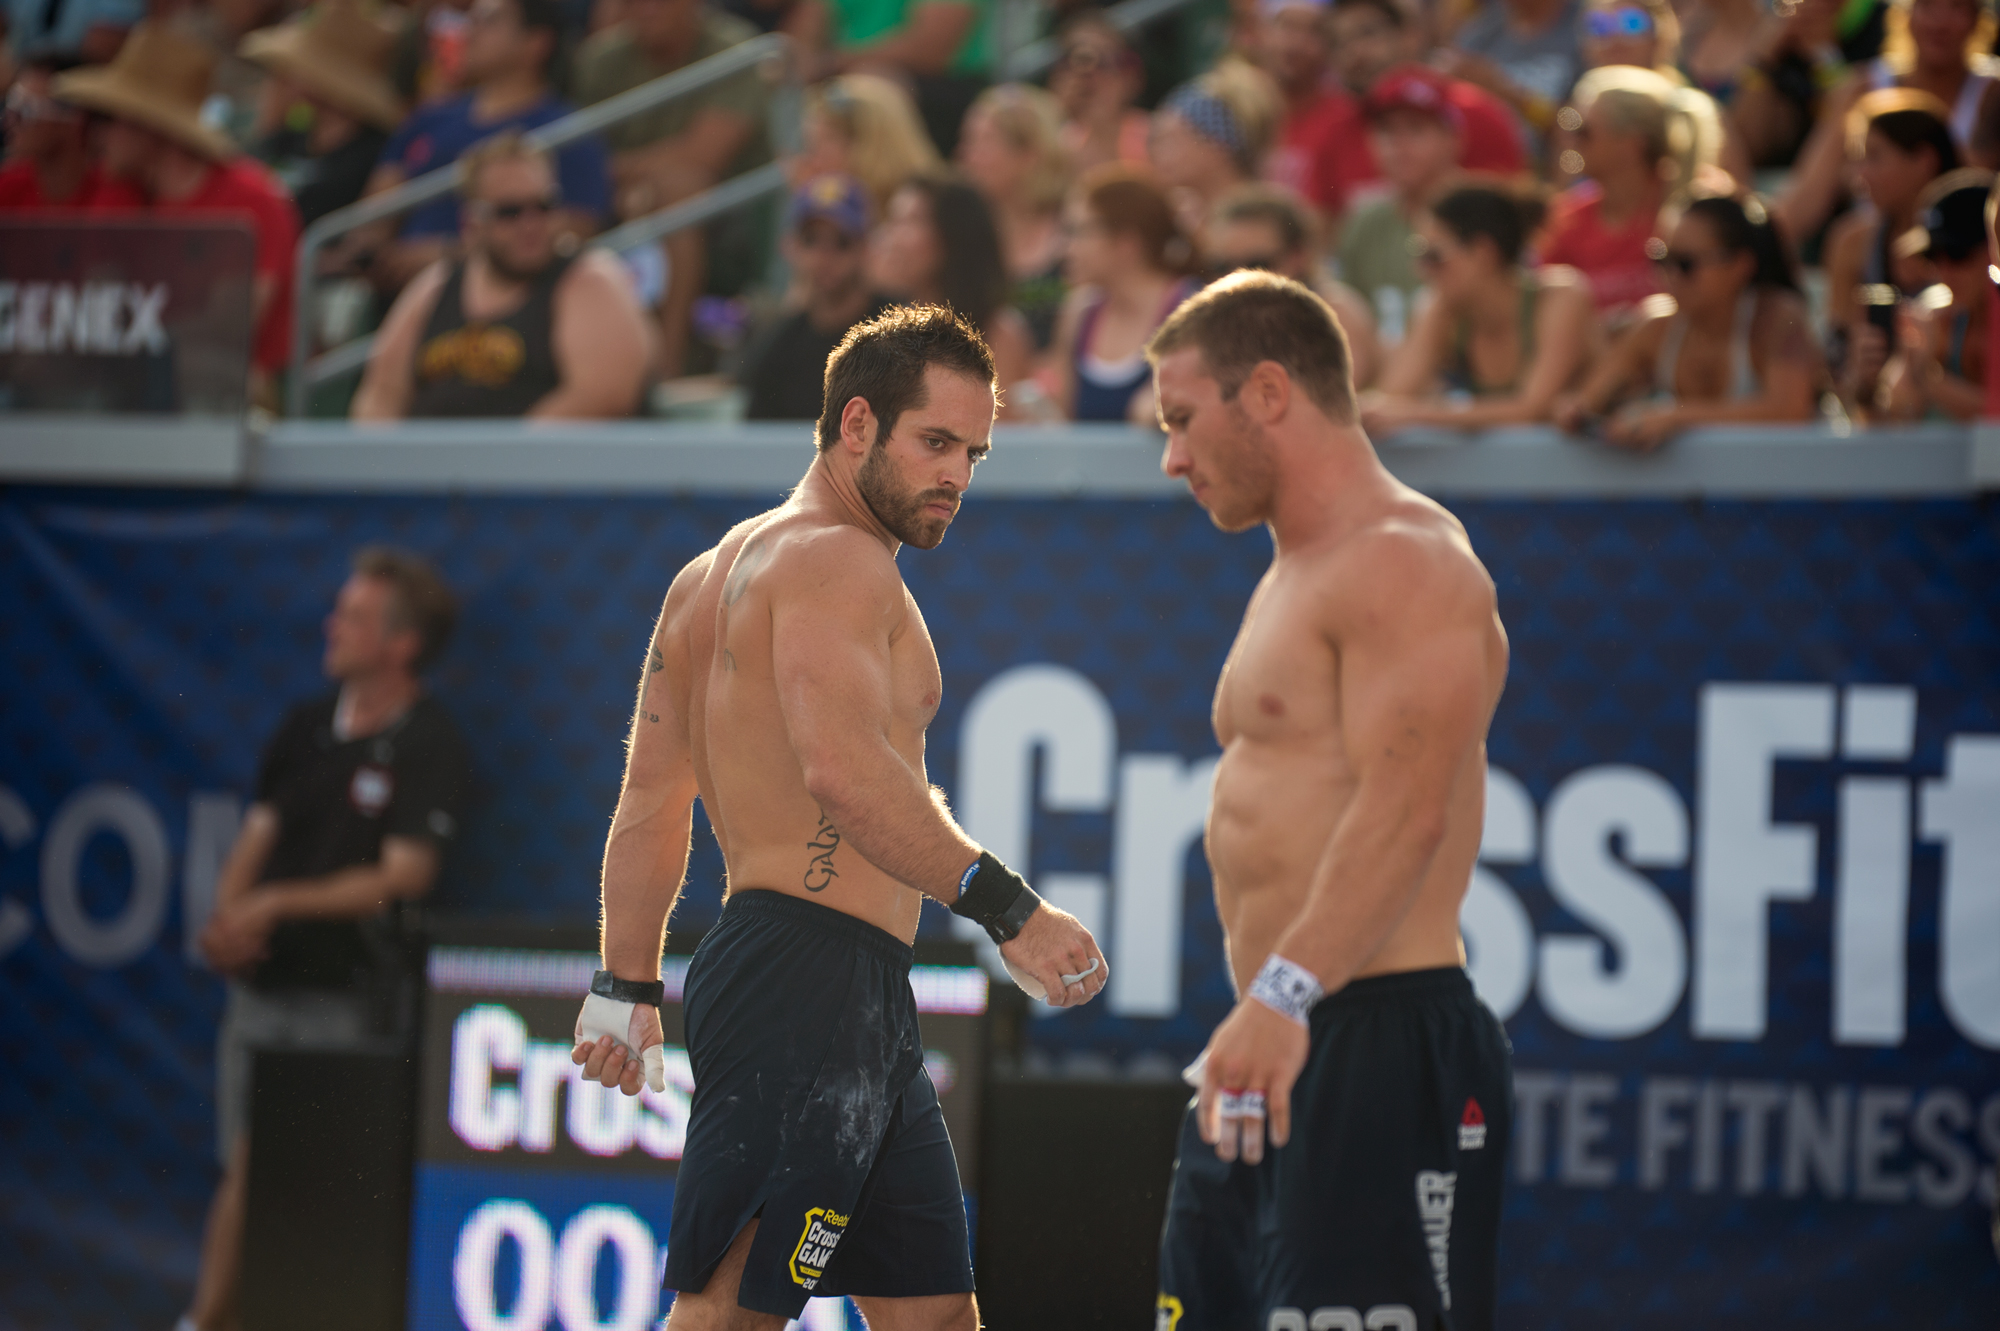 2015 reebok crossfit games